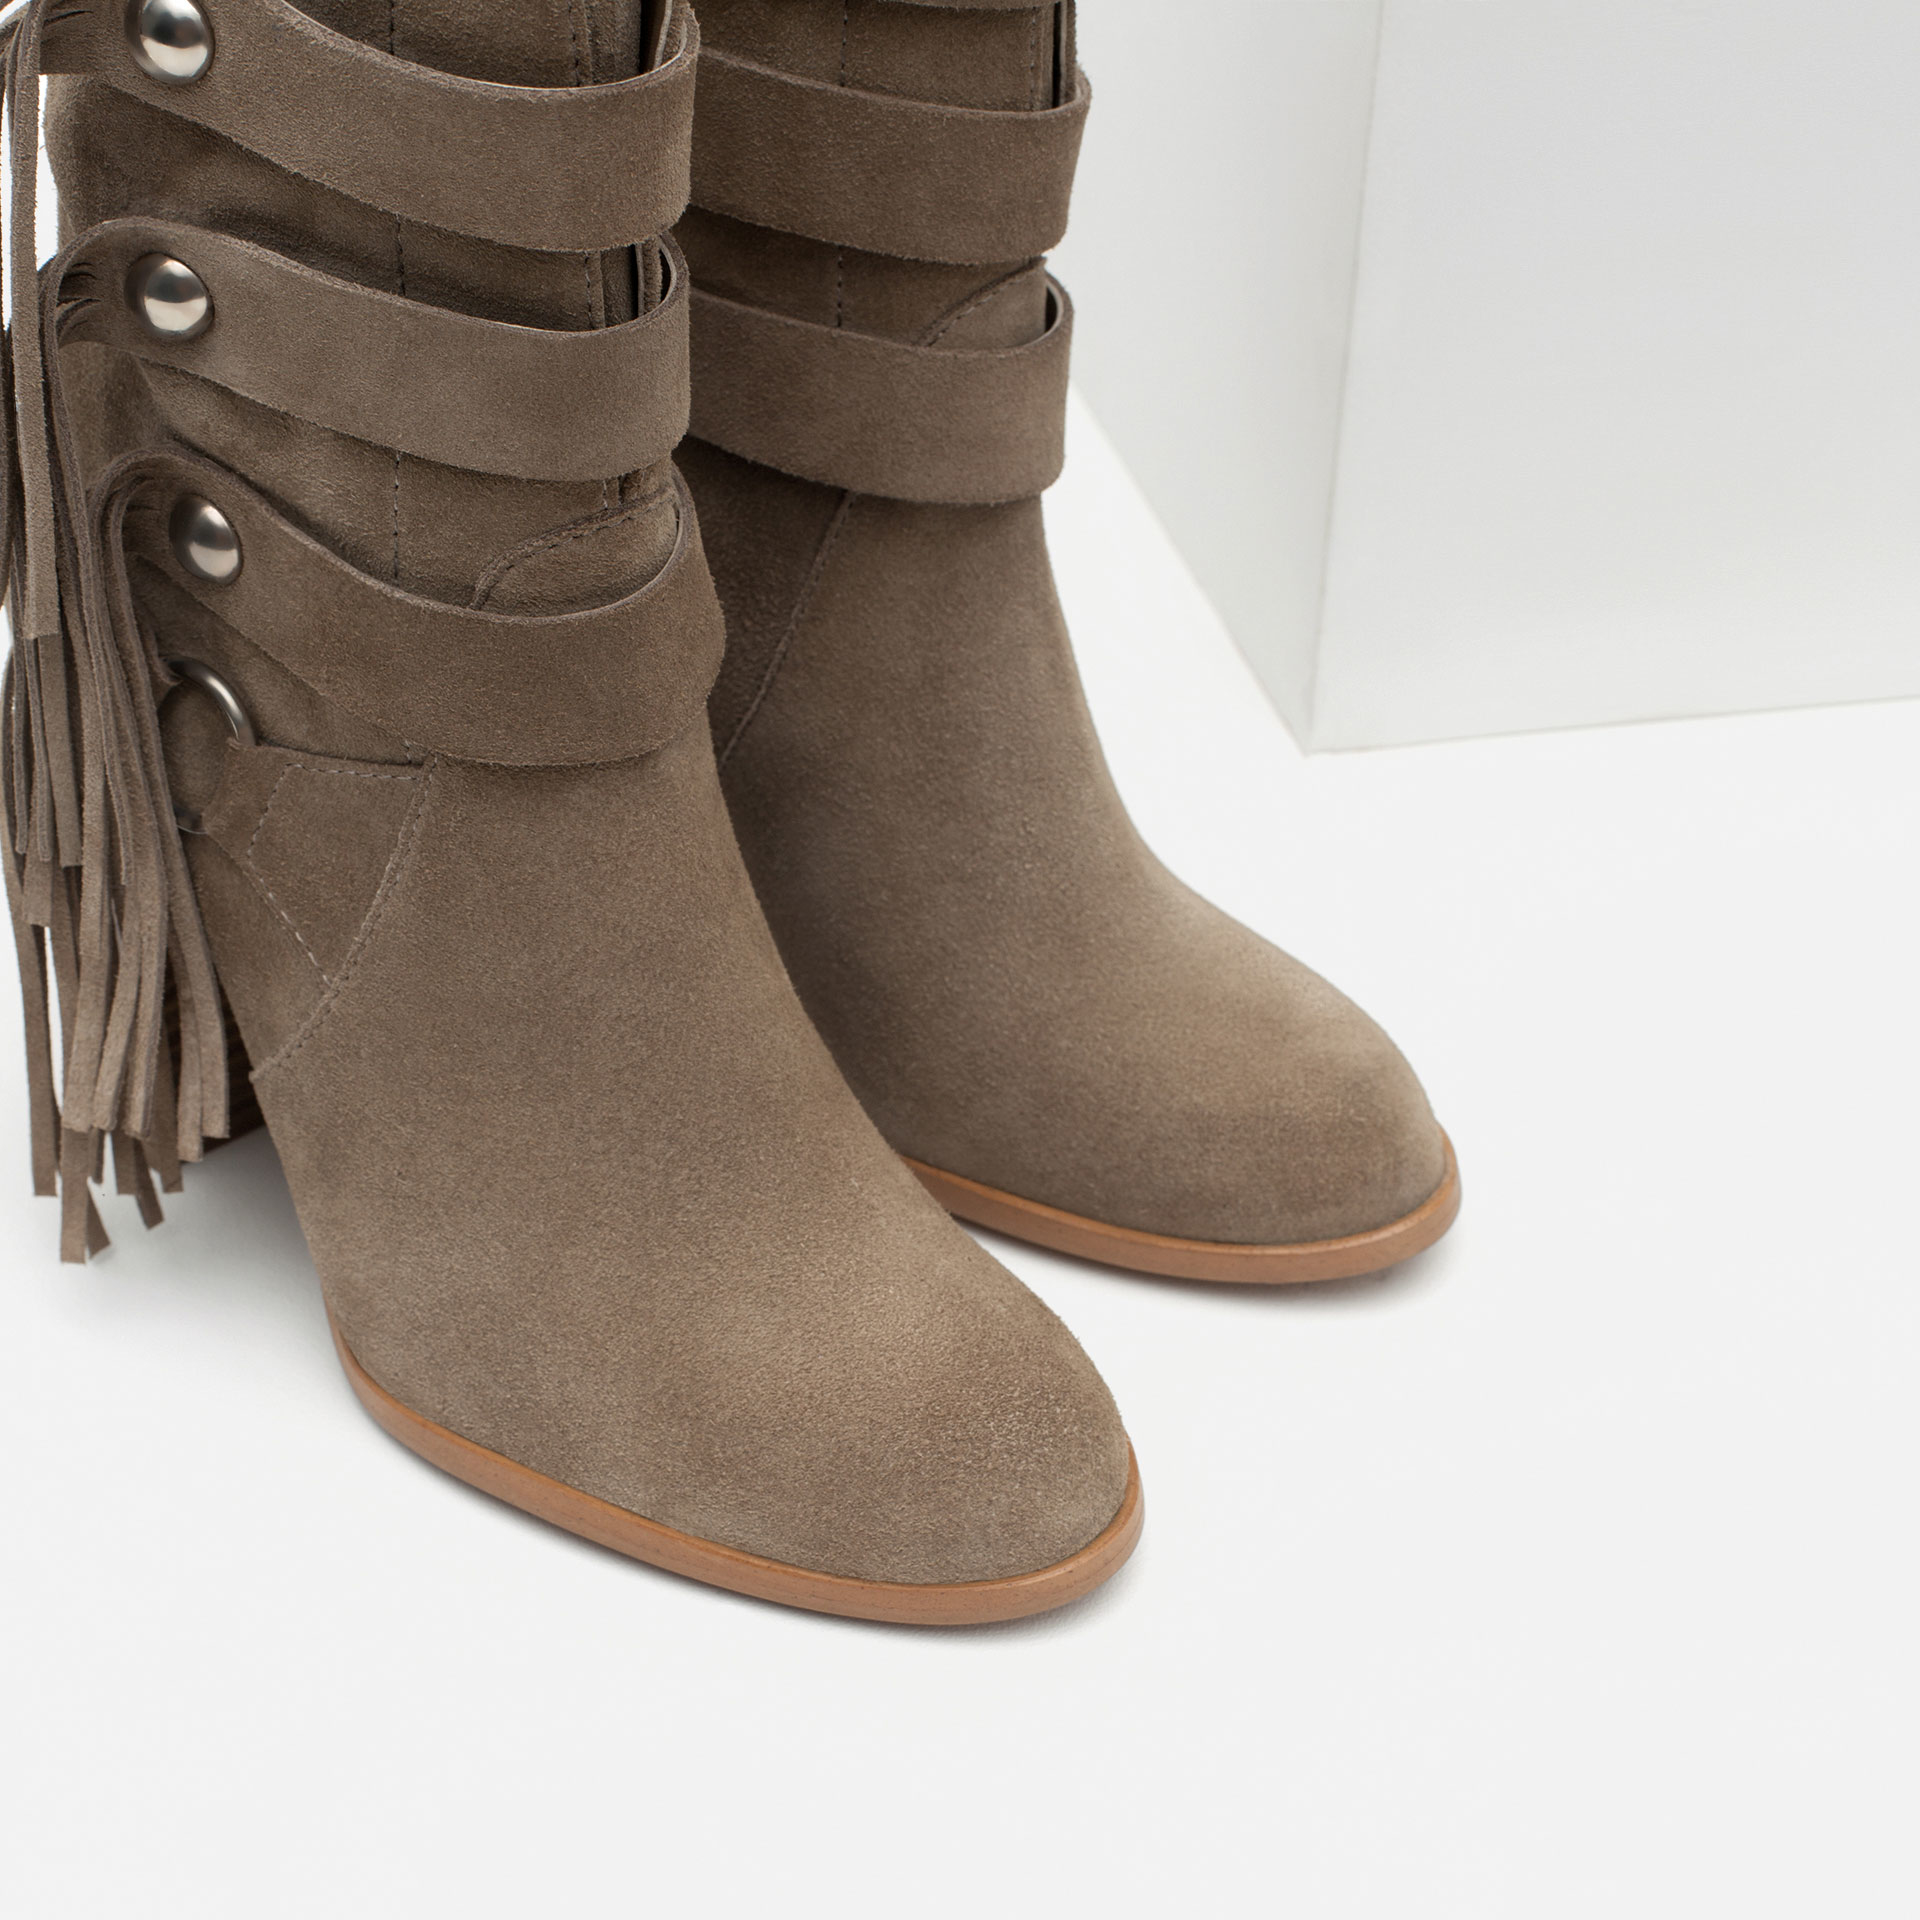 Zara High Heel Leather Ankle Boots With Fringes in Natural | Lyst